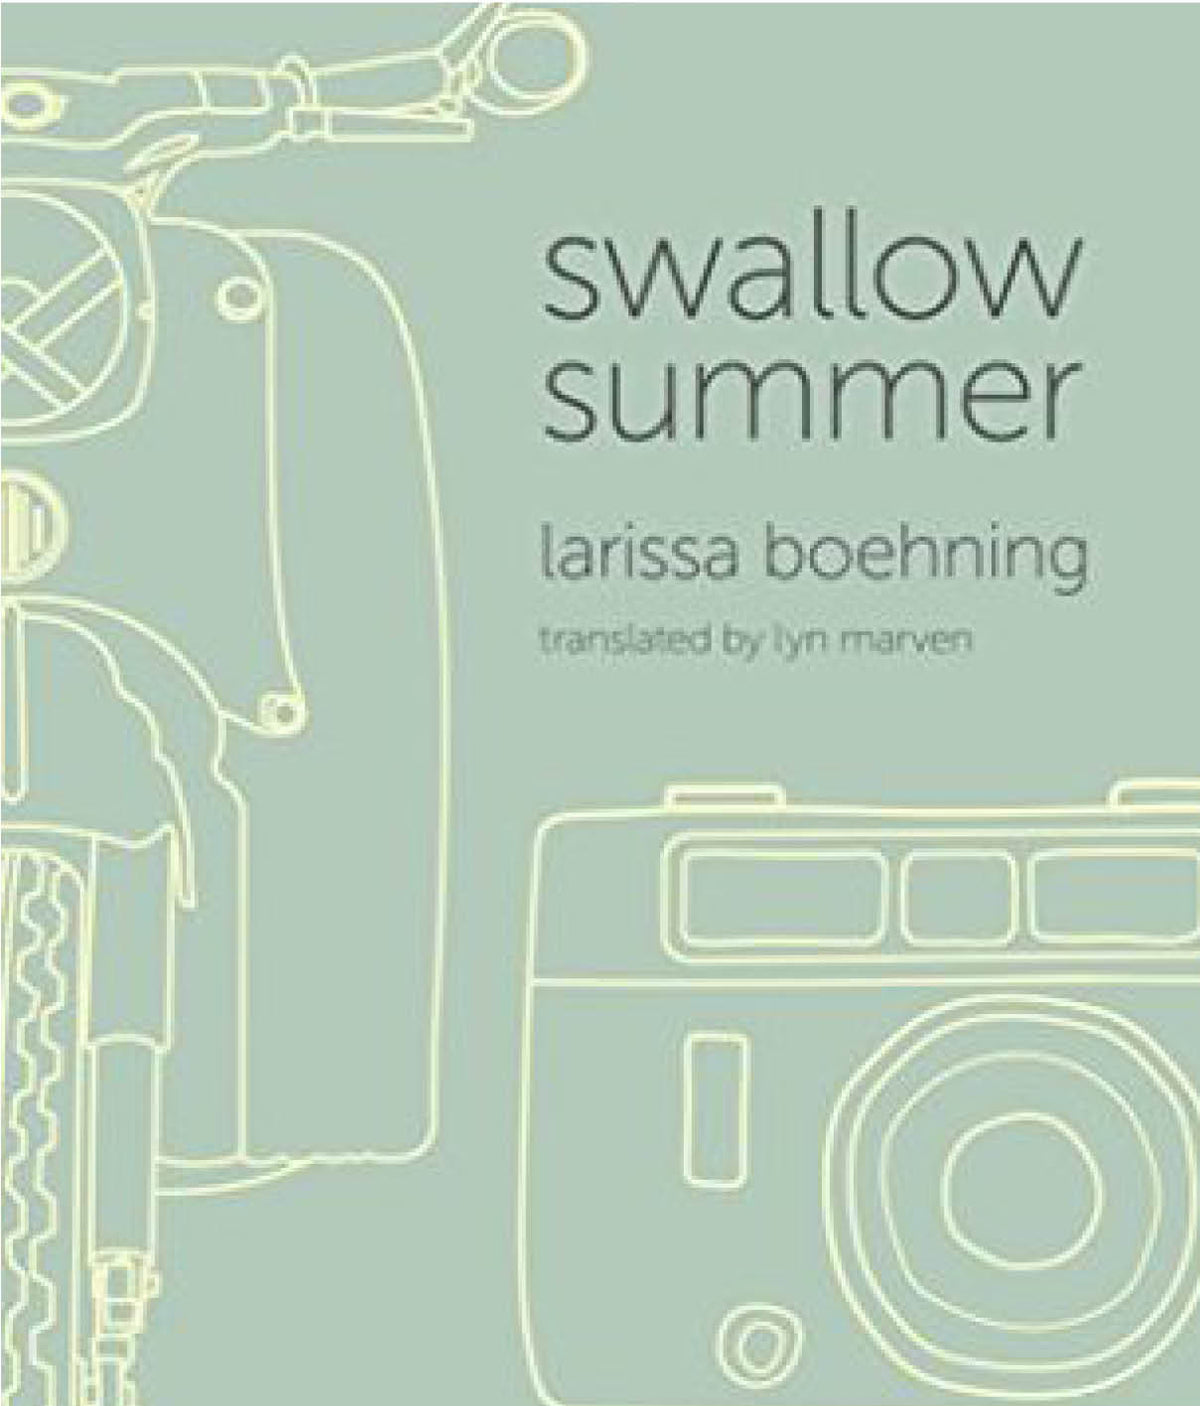 Swallow Summer by Larissa Boehning